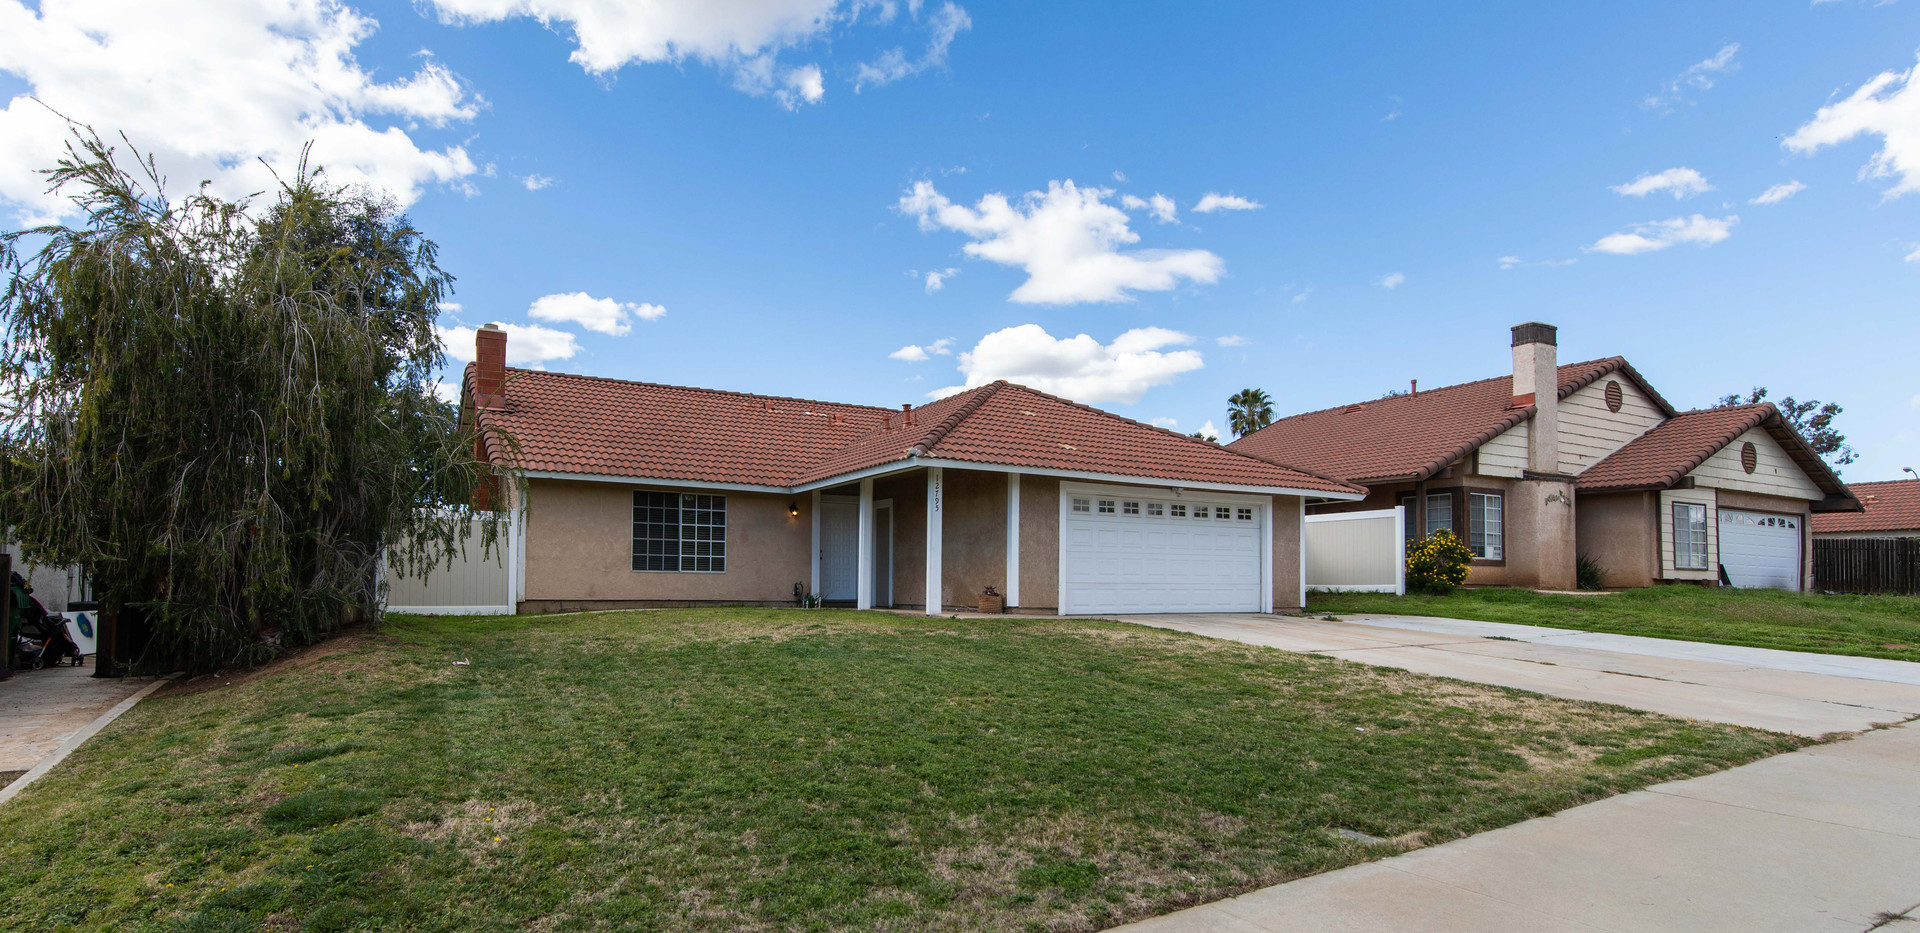 12795 Willow Tree-ext-2.jpg